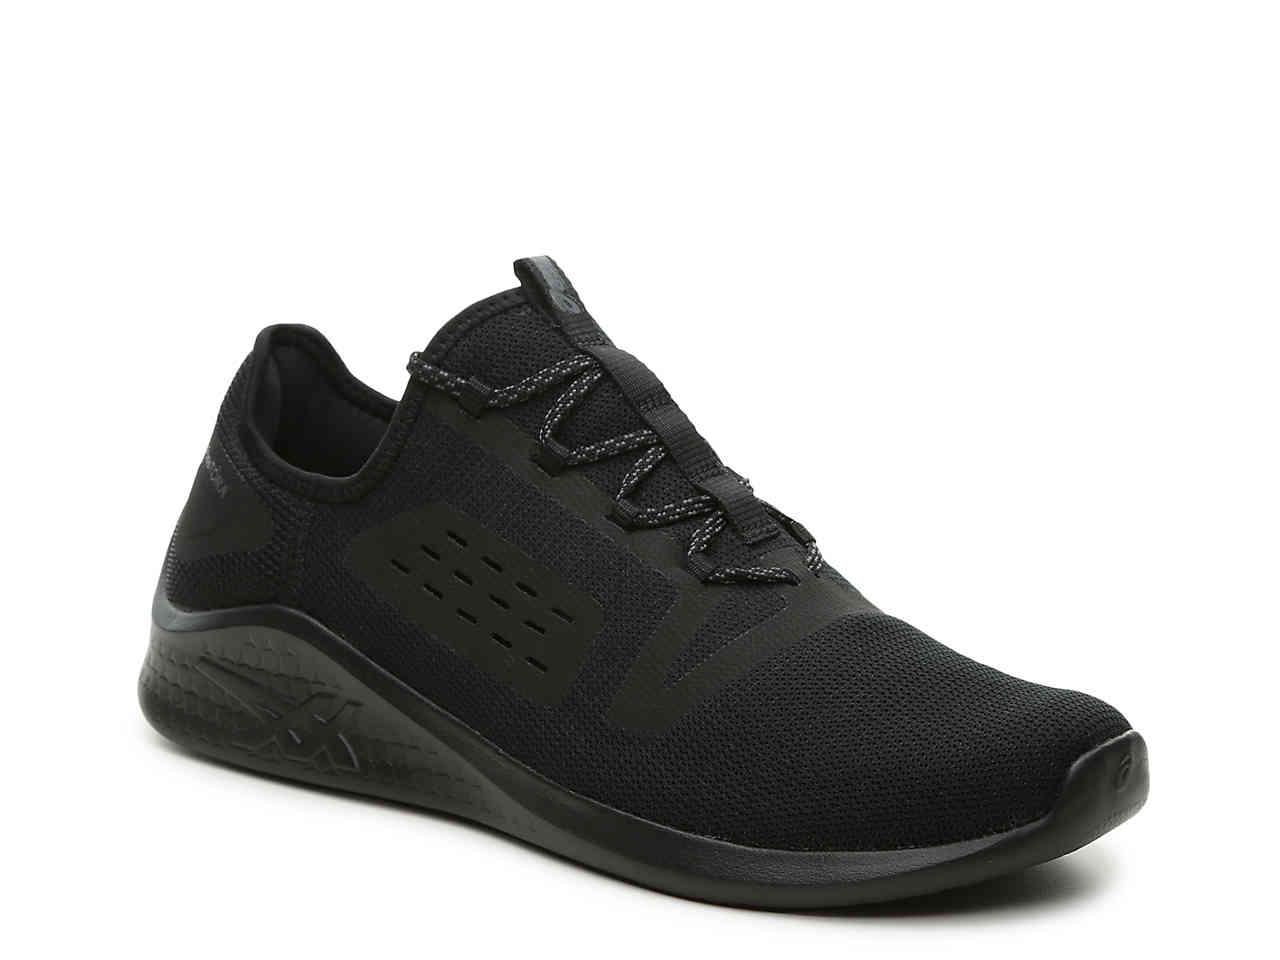 ASICS? FUZETORA - Men's Running Shoes - Black/Carbon 8339090